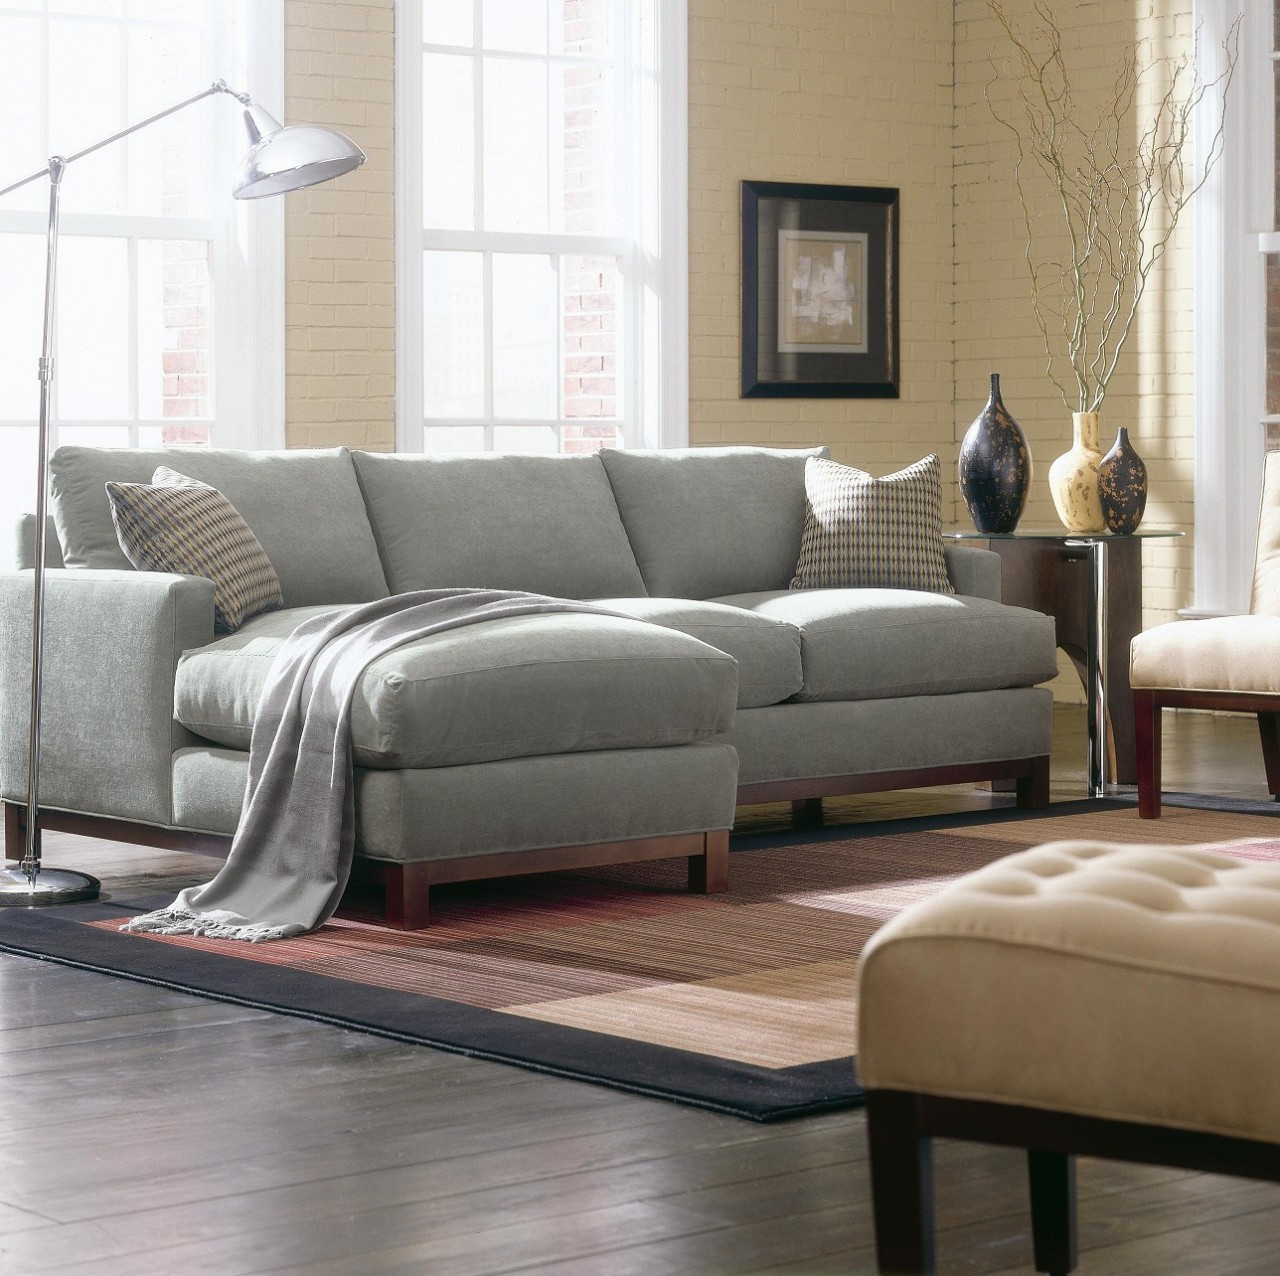 High Quality Sullivan Mini Mod Sectional Sofa